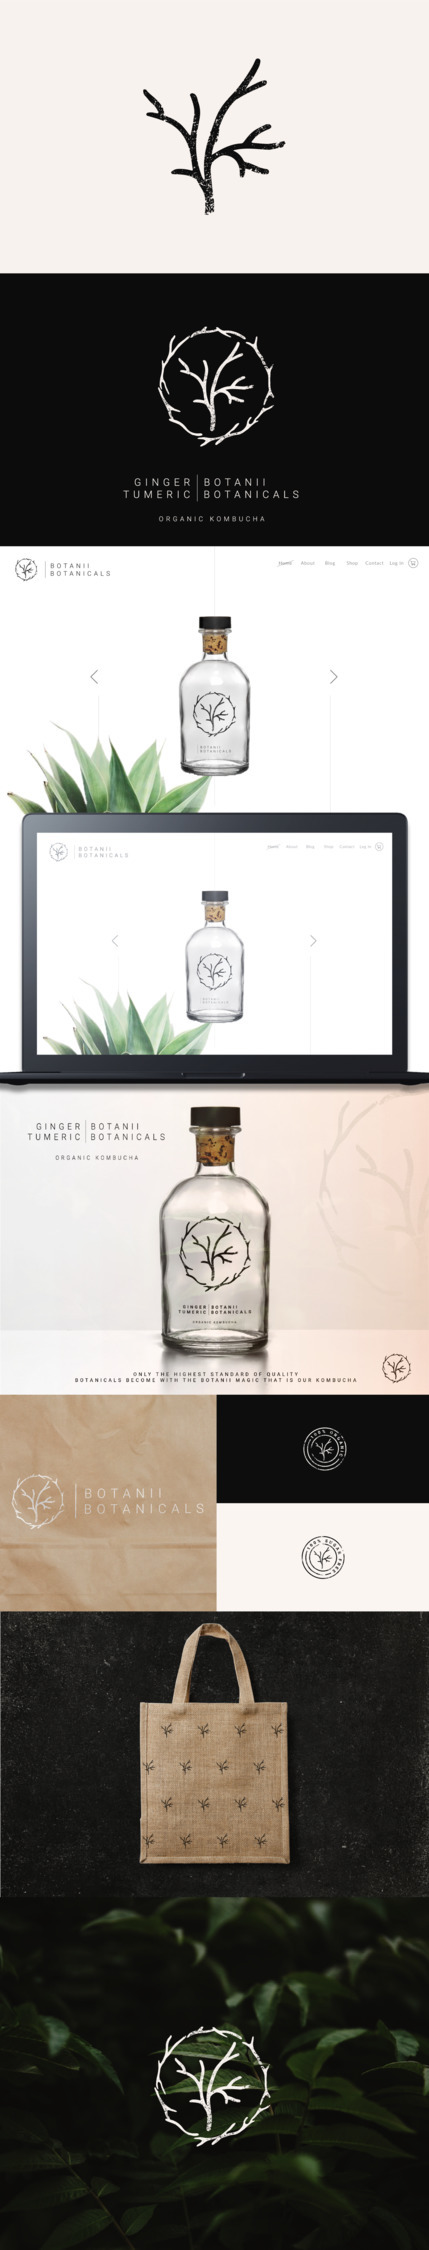 Botanii Botanicals full brandin - broodmethod | ello